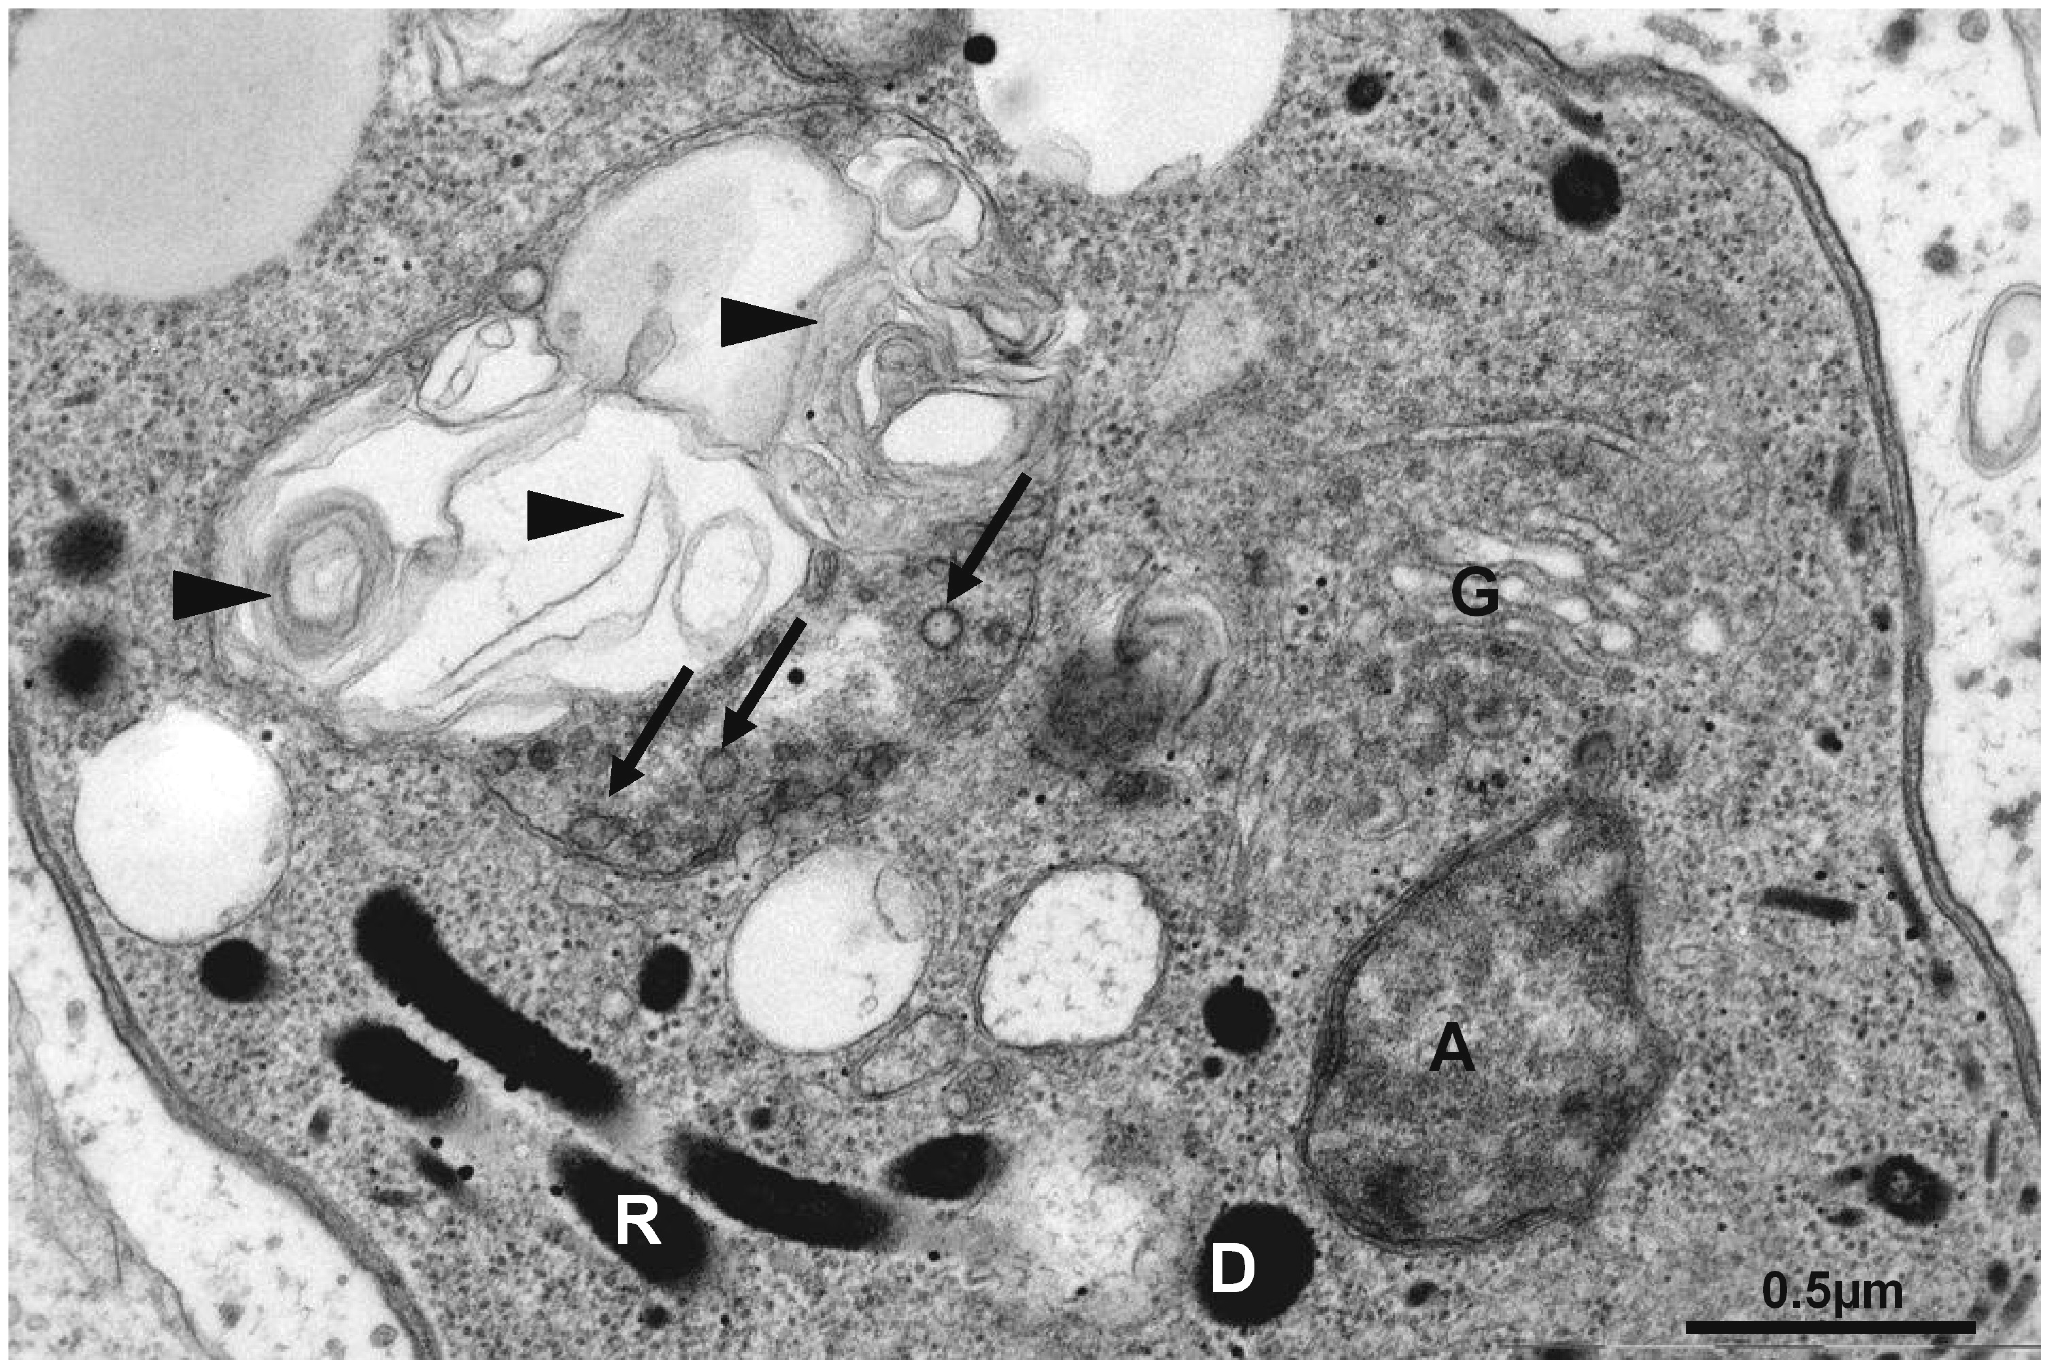 Altered mitochondrial ultrastructure in TgAtg3-depleted tachyzoites observed by electron microscopy.